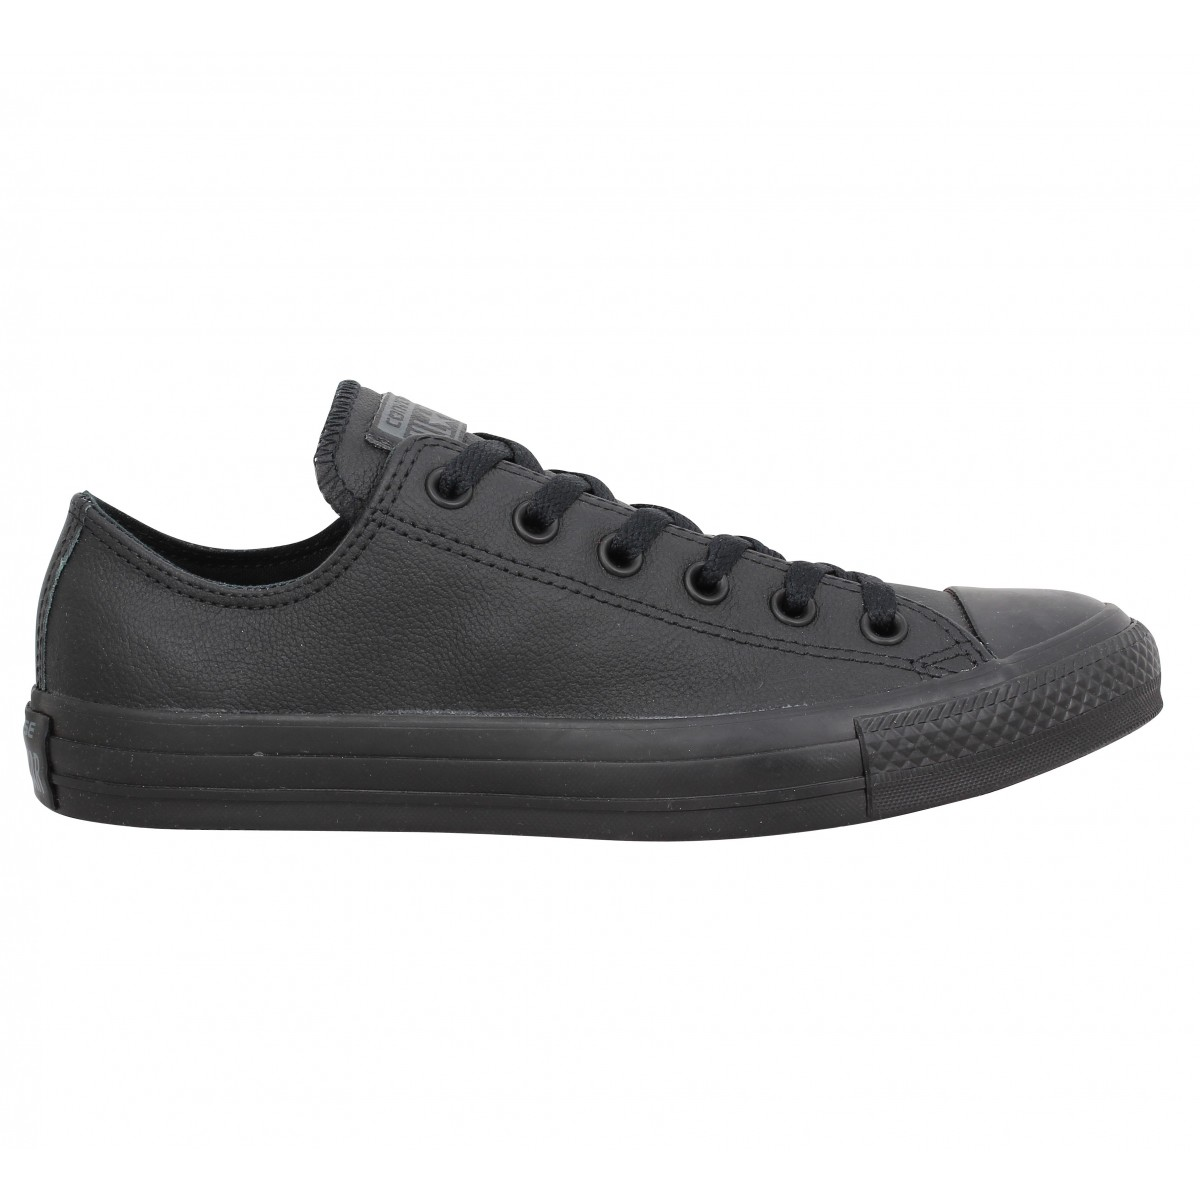 CONVERSE Chuck Taylor All Star cuir Homme Black